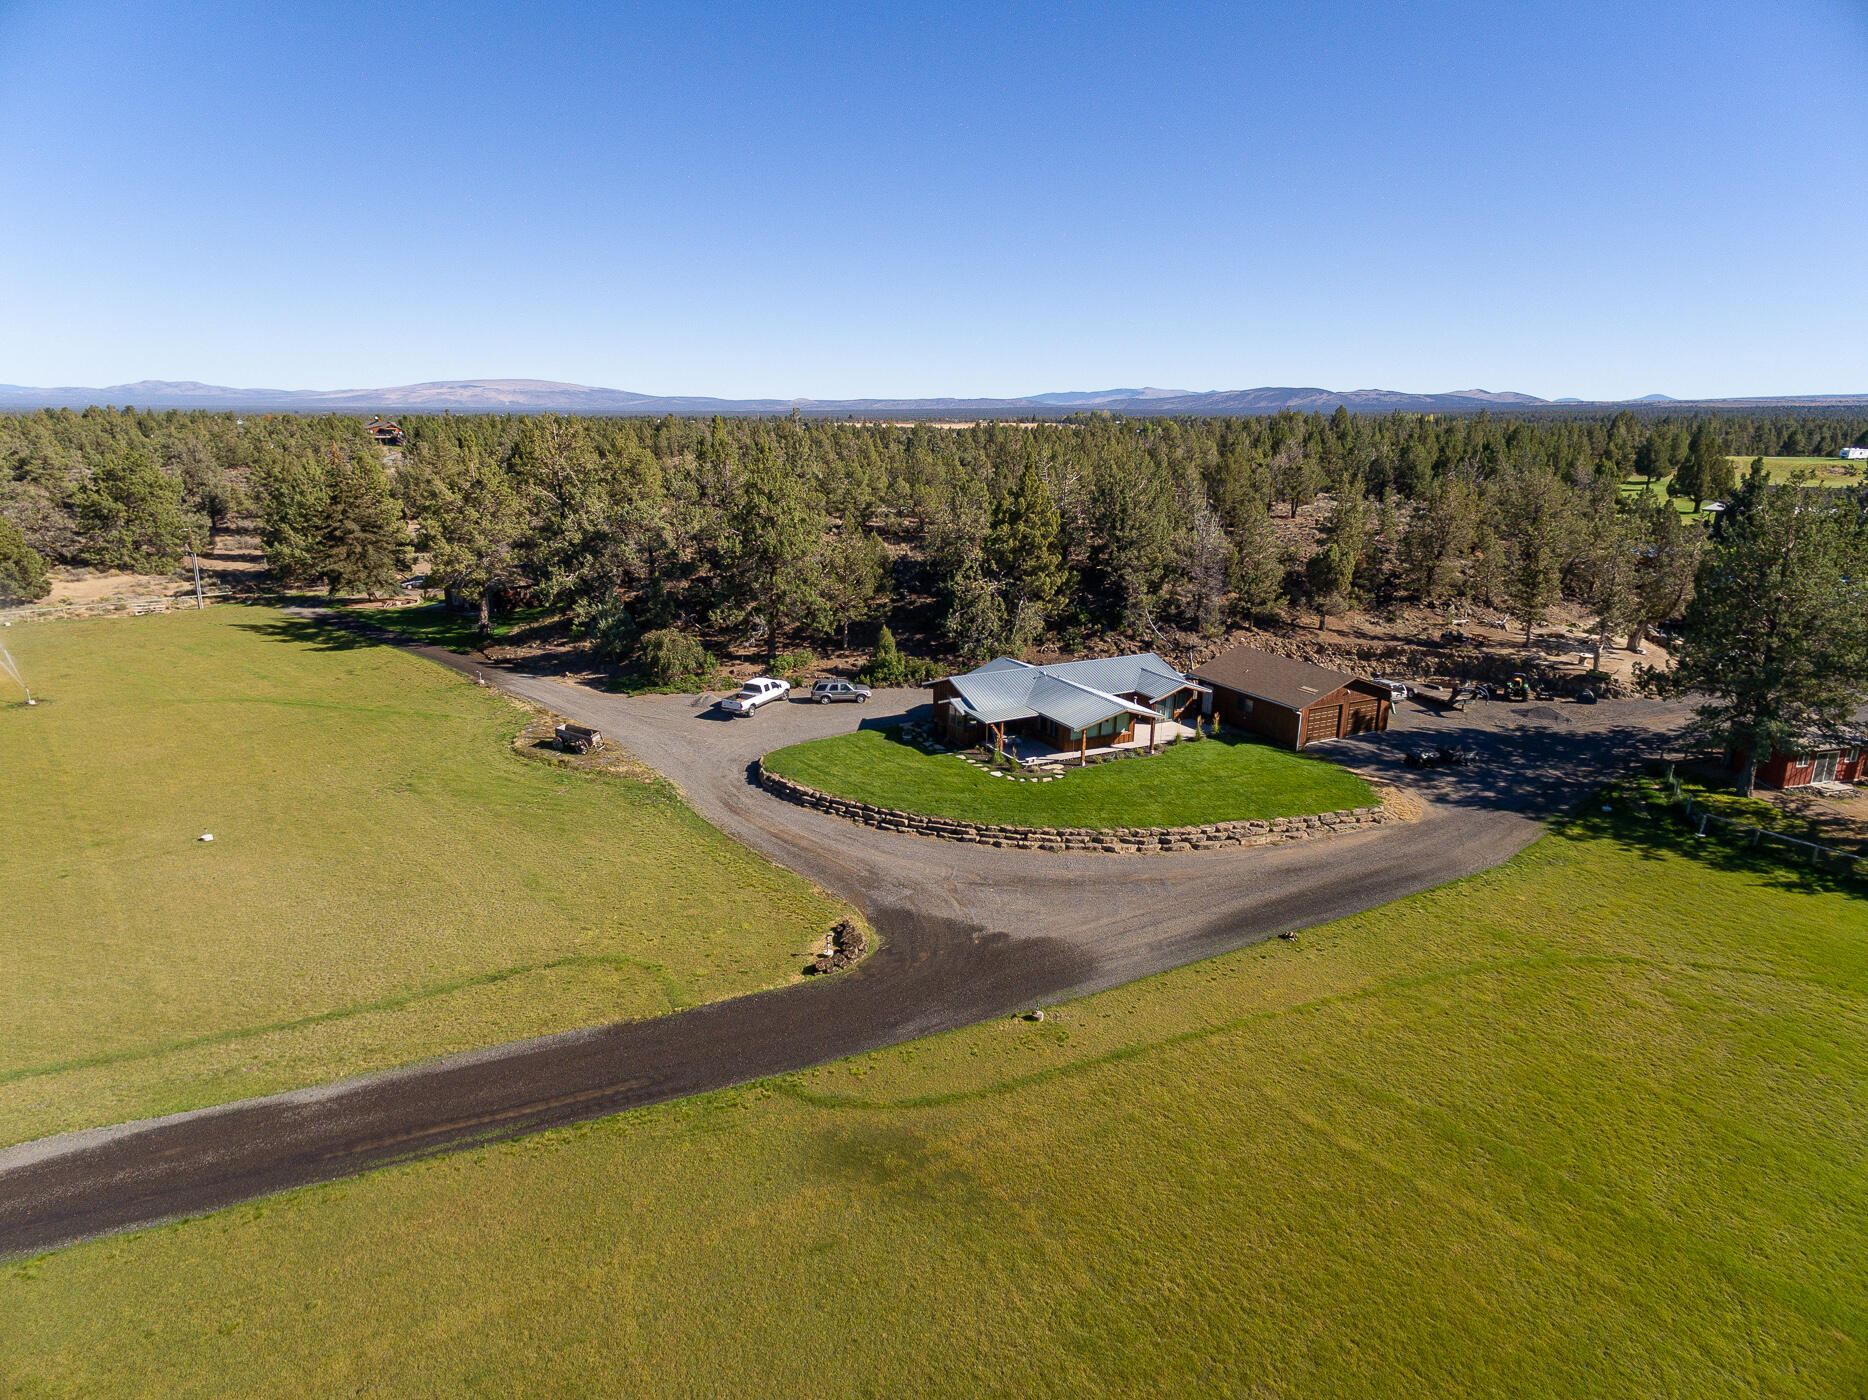 39 PRISTINE, FLAT & USABLE ACRES with huge mountain views, gorgeous pond and underground irrigation. Two separate homes; the main house is 1612sf, cottage is 1172sf, plus a 611sf bunkhouse adjoining the 35x59 drive-thru shop. Pride of ownership shines throughout land and buildings. Bring your horses! 1/3mile to BLM land , 28x76 covered horse set-up w/tack room and washing stations as well as 140x280 arena area. 20.3 acres water rights.